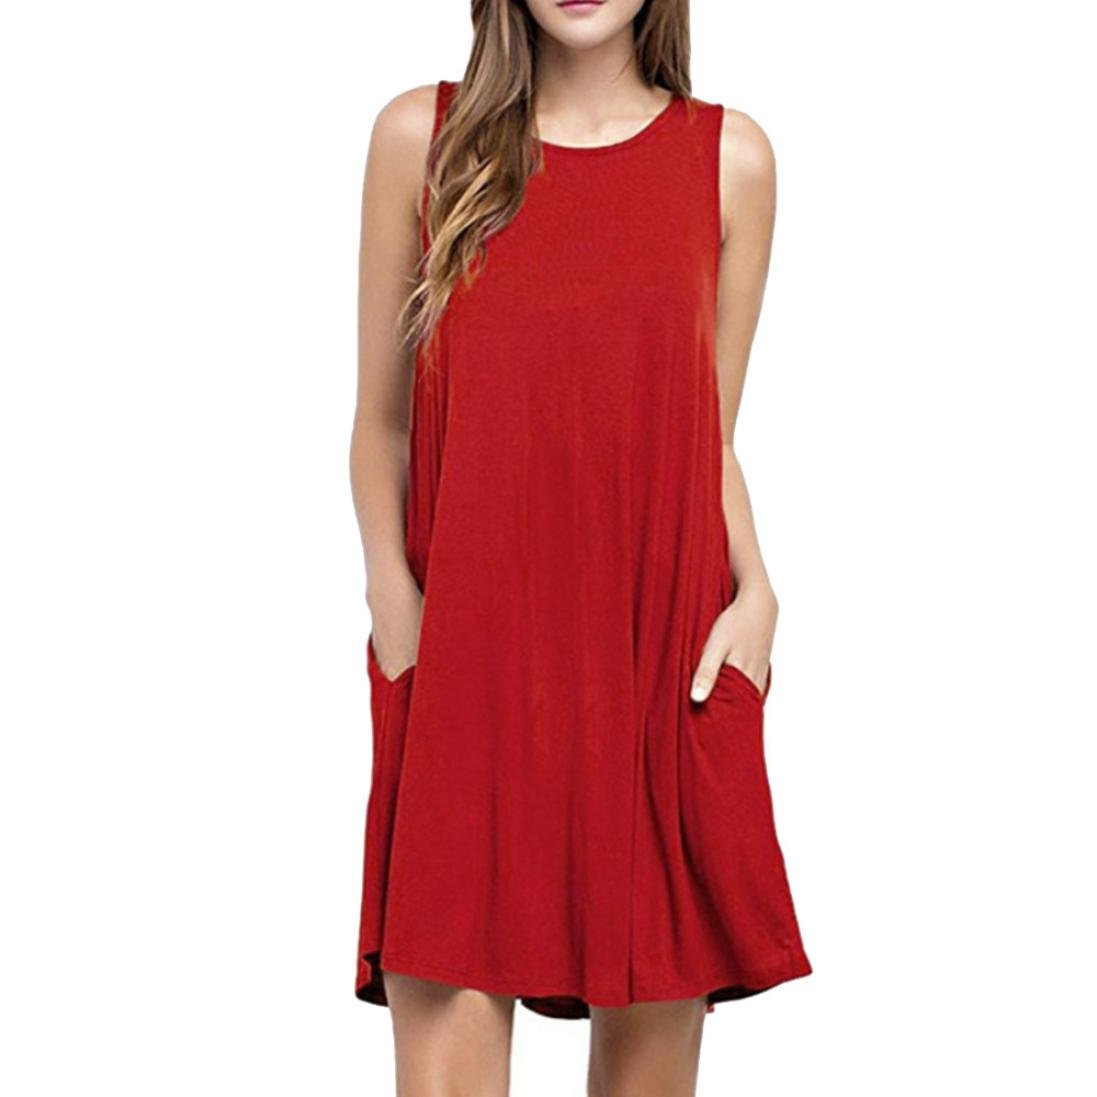 aeac1dfe6 Hot Sale Tunic Tshirt Dress, ZYooh Women's Casual O-Neck Pockets Sleeveless  Maxi Knee Lenth Dresses Loose Party Dress (Red, M): Amazon.com: Grocery ...